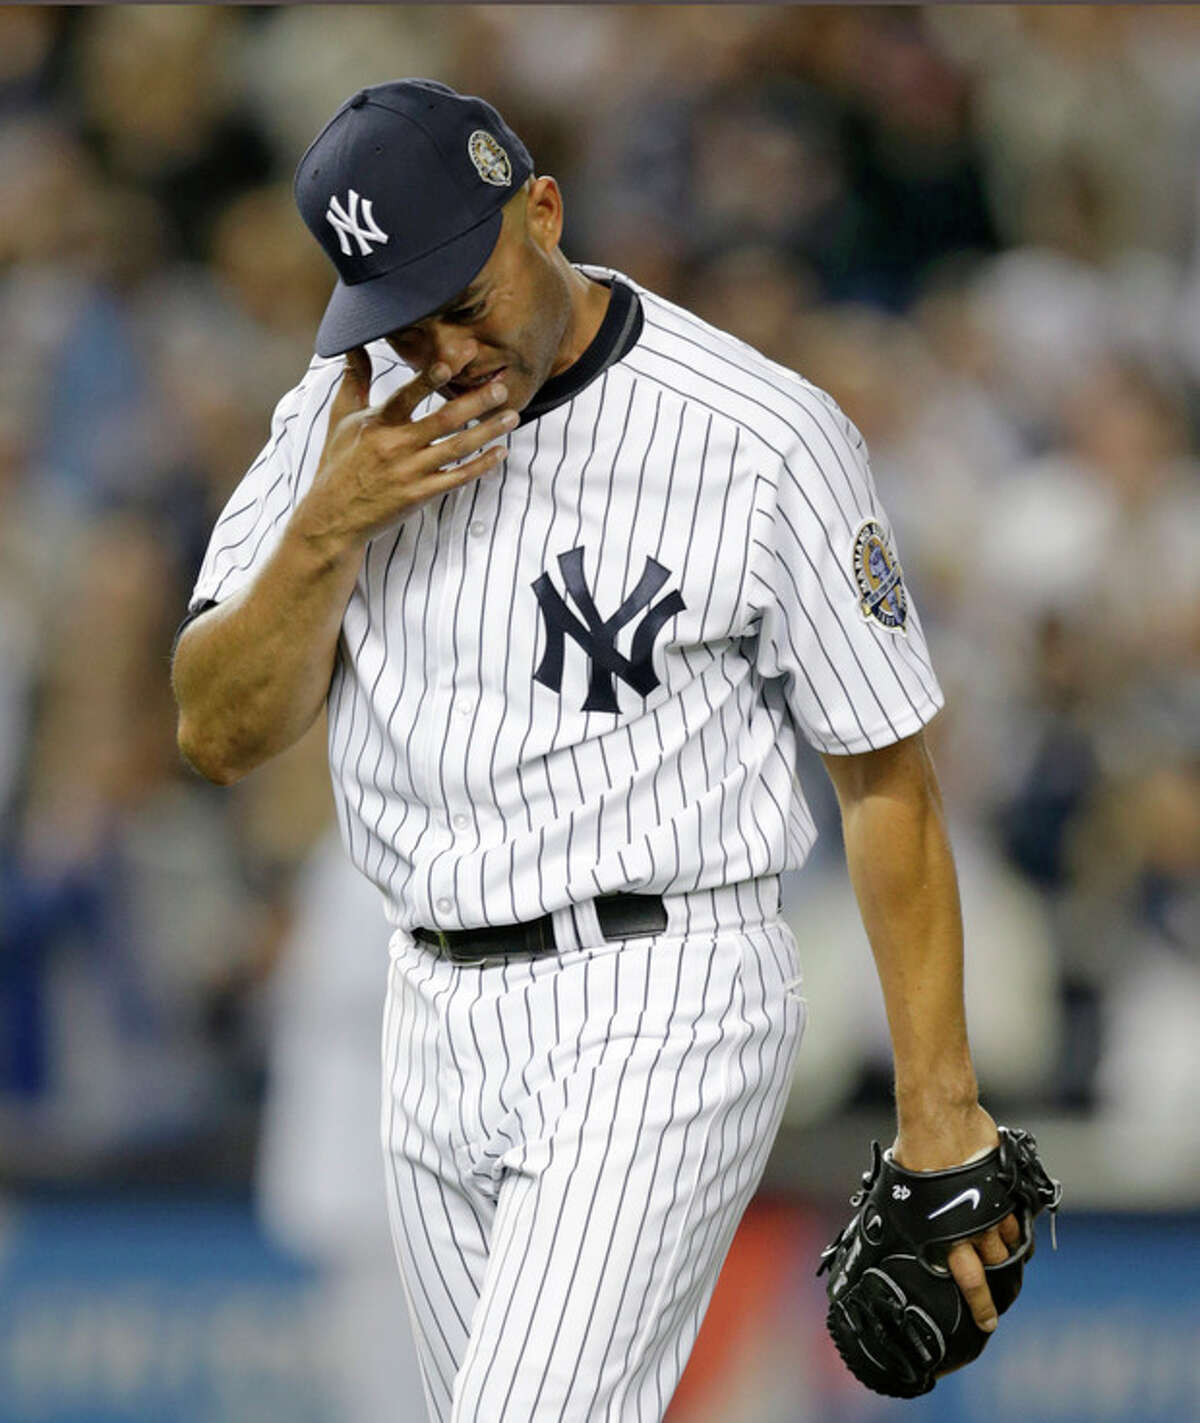 New York Yankees relief pitcher Mariano Rivera cries coming off the mound with two outs in the ninth inning of his final appearance in a baseball game at Yankee Stadium, Thursday, Sept. 26, 2013, in New York. The Yankees defeated the Tampa Bay Rays 4-0. (AP Photo/Kathy Willens)